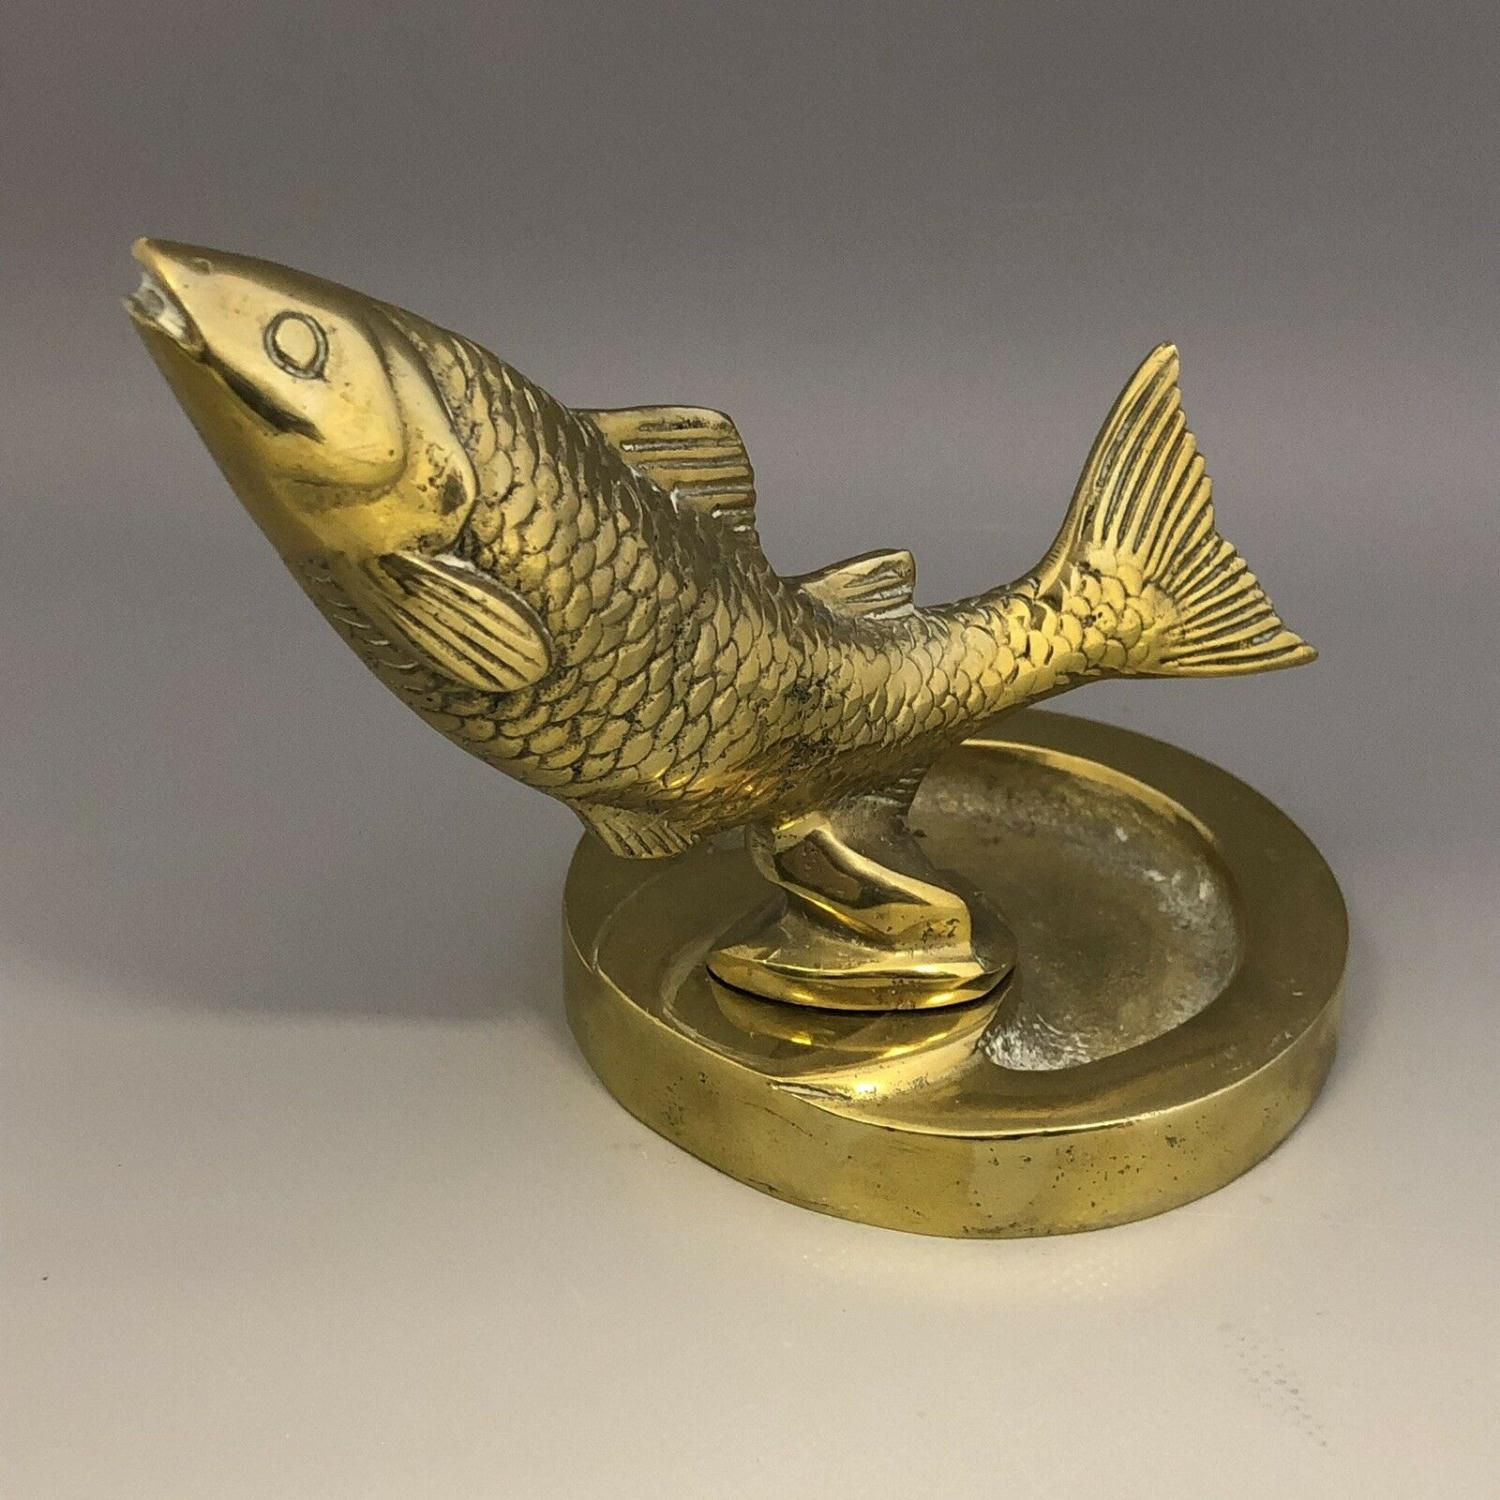 Lot 34 - Vintage cast brass ashtray with leaping salmon mount fishing interest car mascot